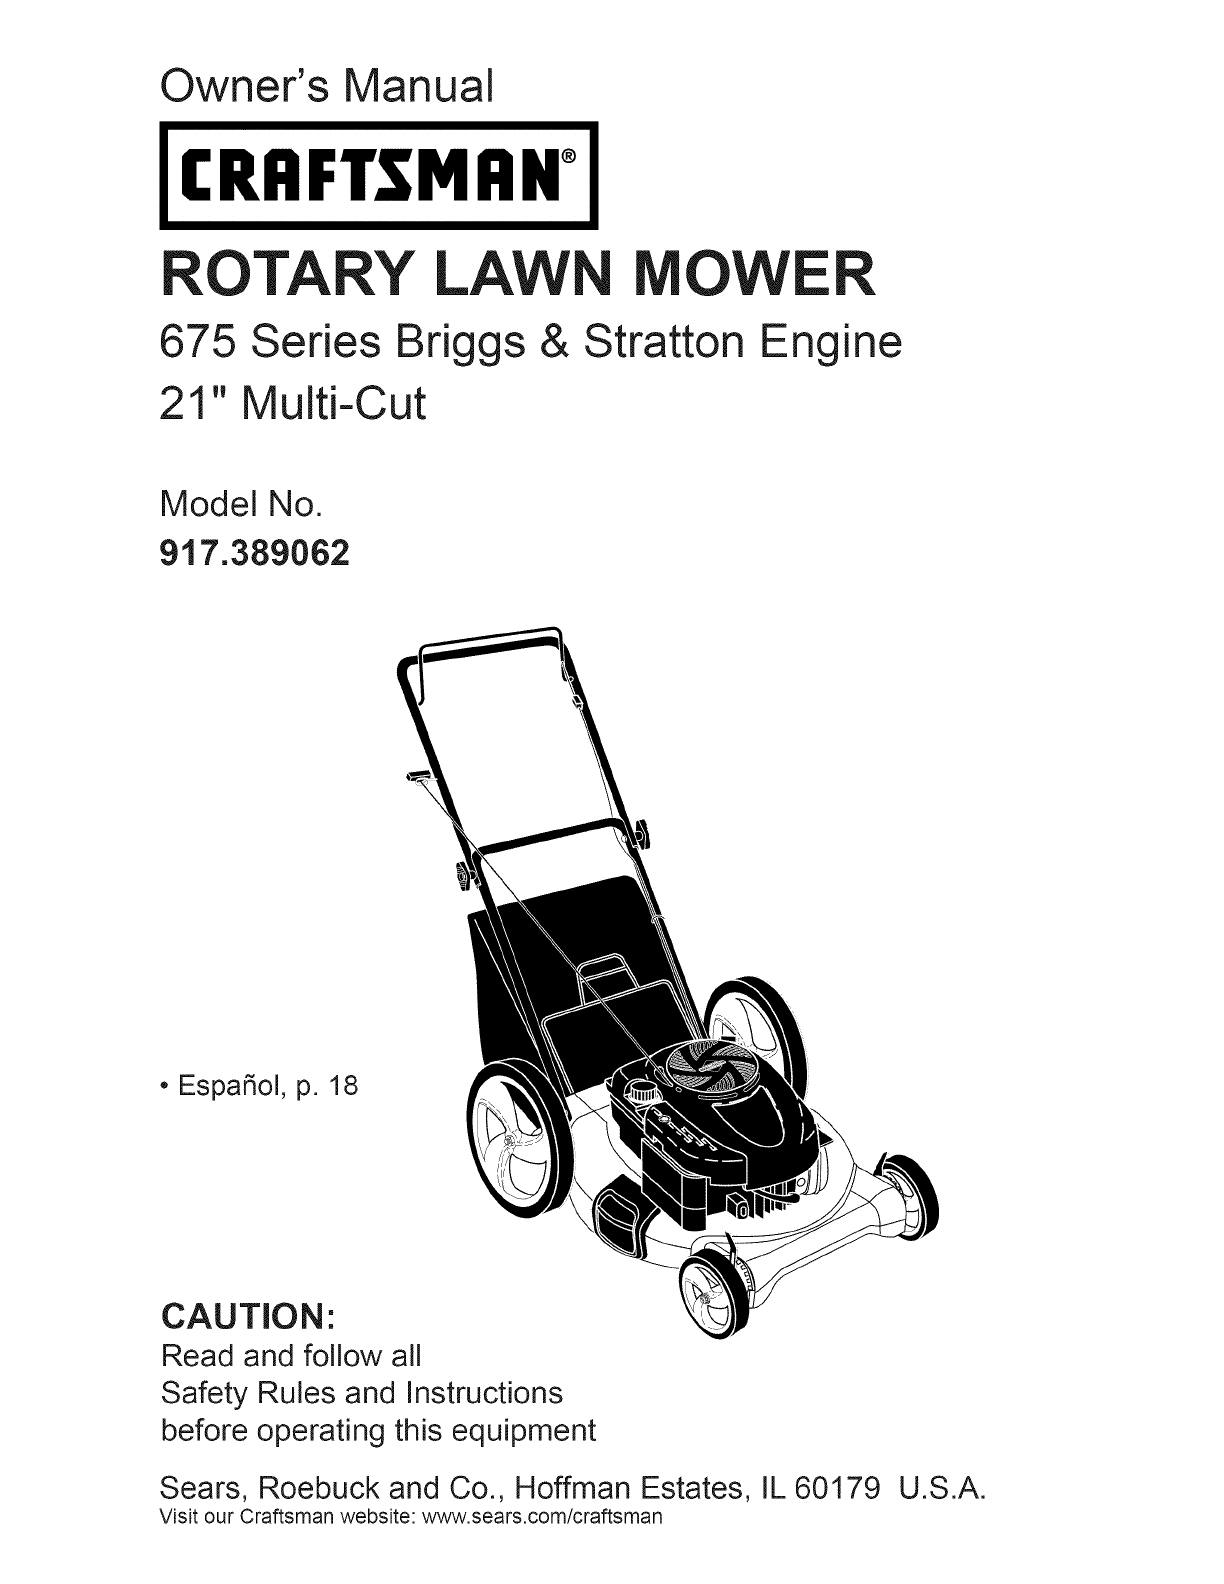 craftsman lawn mower 917 389062 user guide manualsonline com rh audio manualsonline com Briggs Stratton Lawn Mower Owner Manuals briggs and stratton 675 series engine owners manual